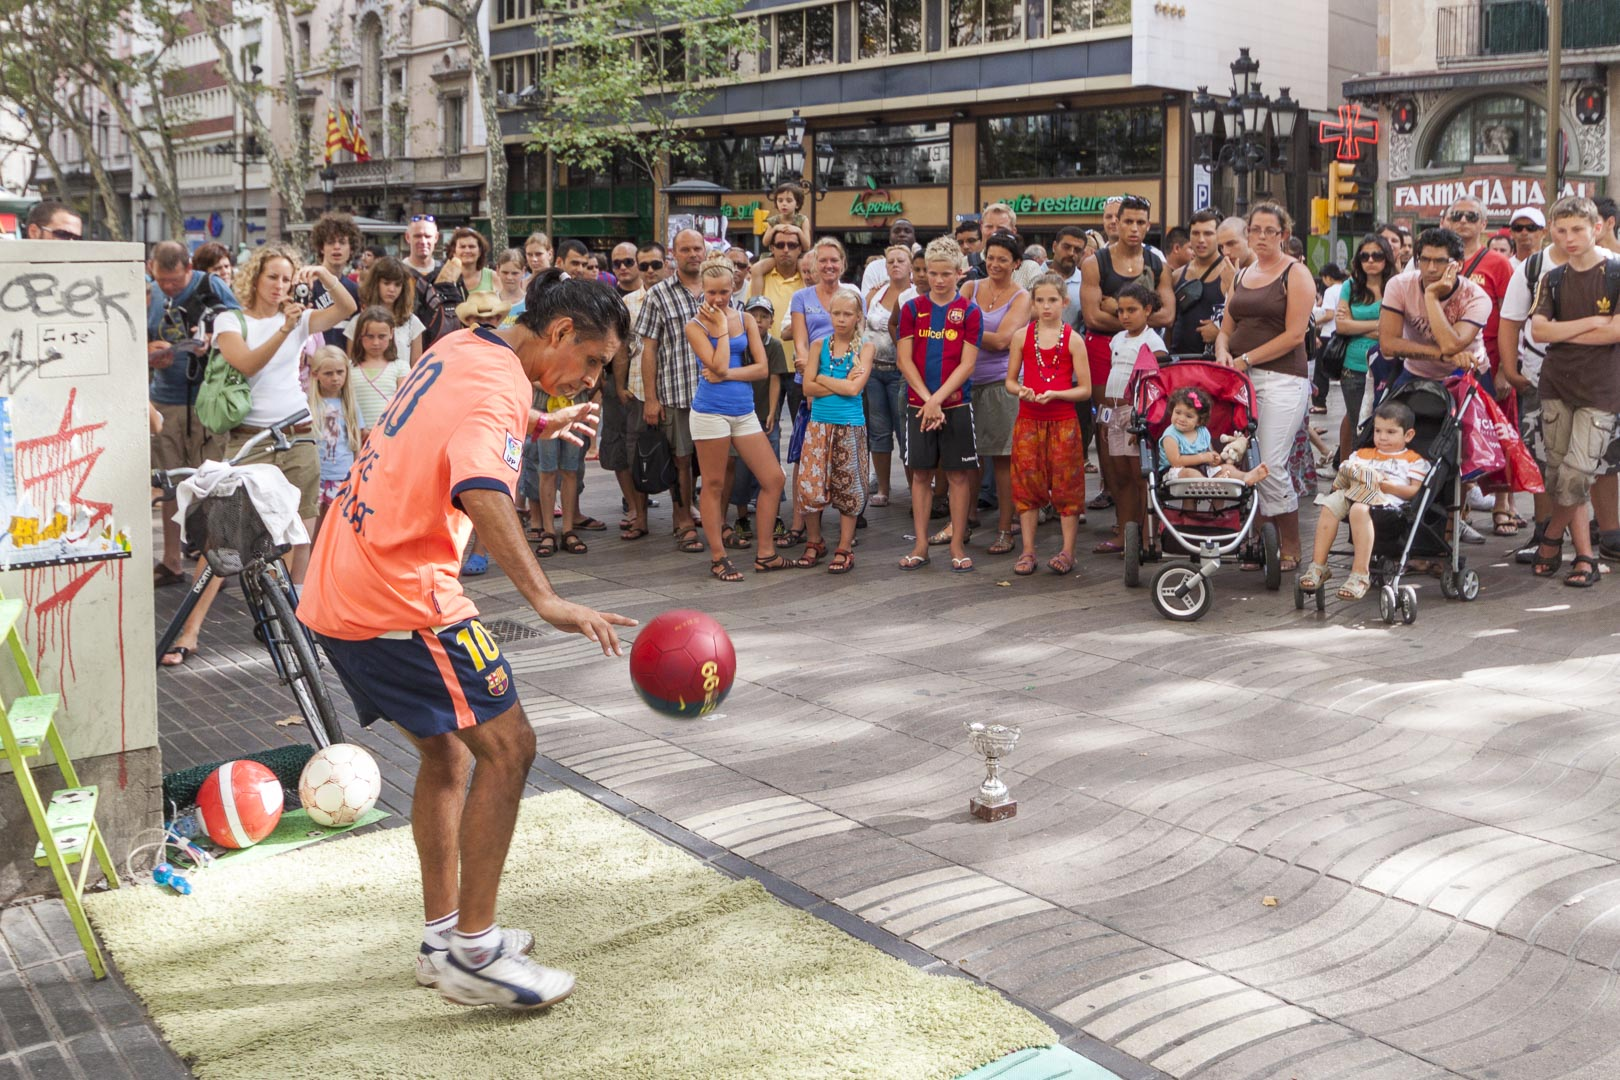 Las Ramblas Street Performers in Barcelona, Spain